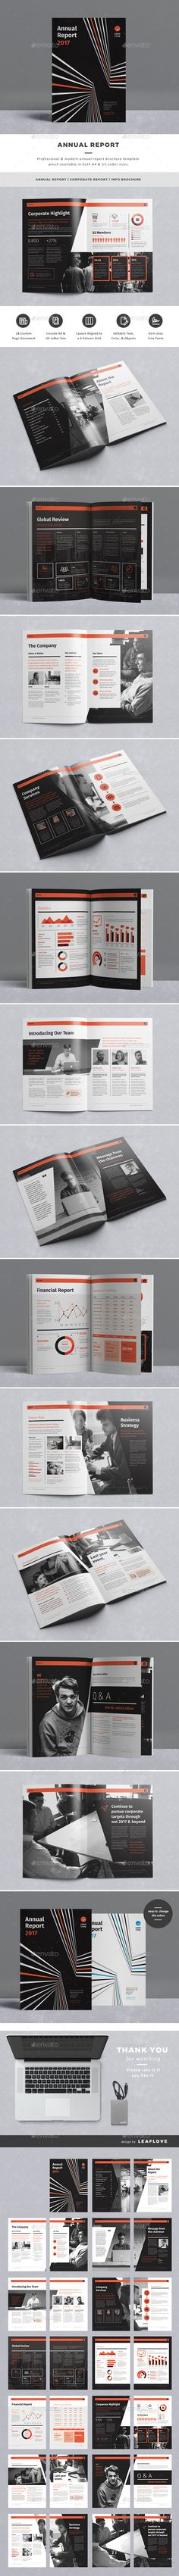 Annual Report Template InDesign INDD. Download here: http://graphicriver.net/item/annual-report/16449244?ref=ksioks